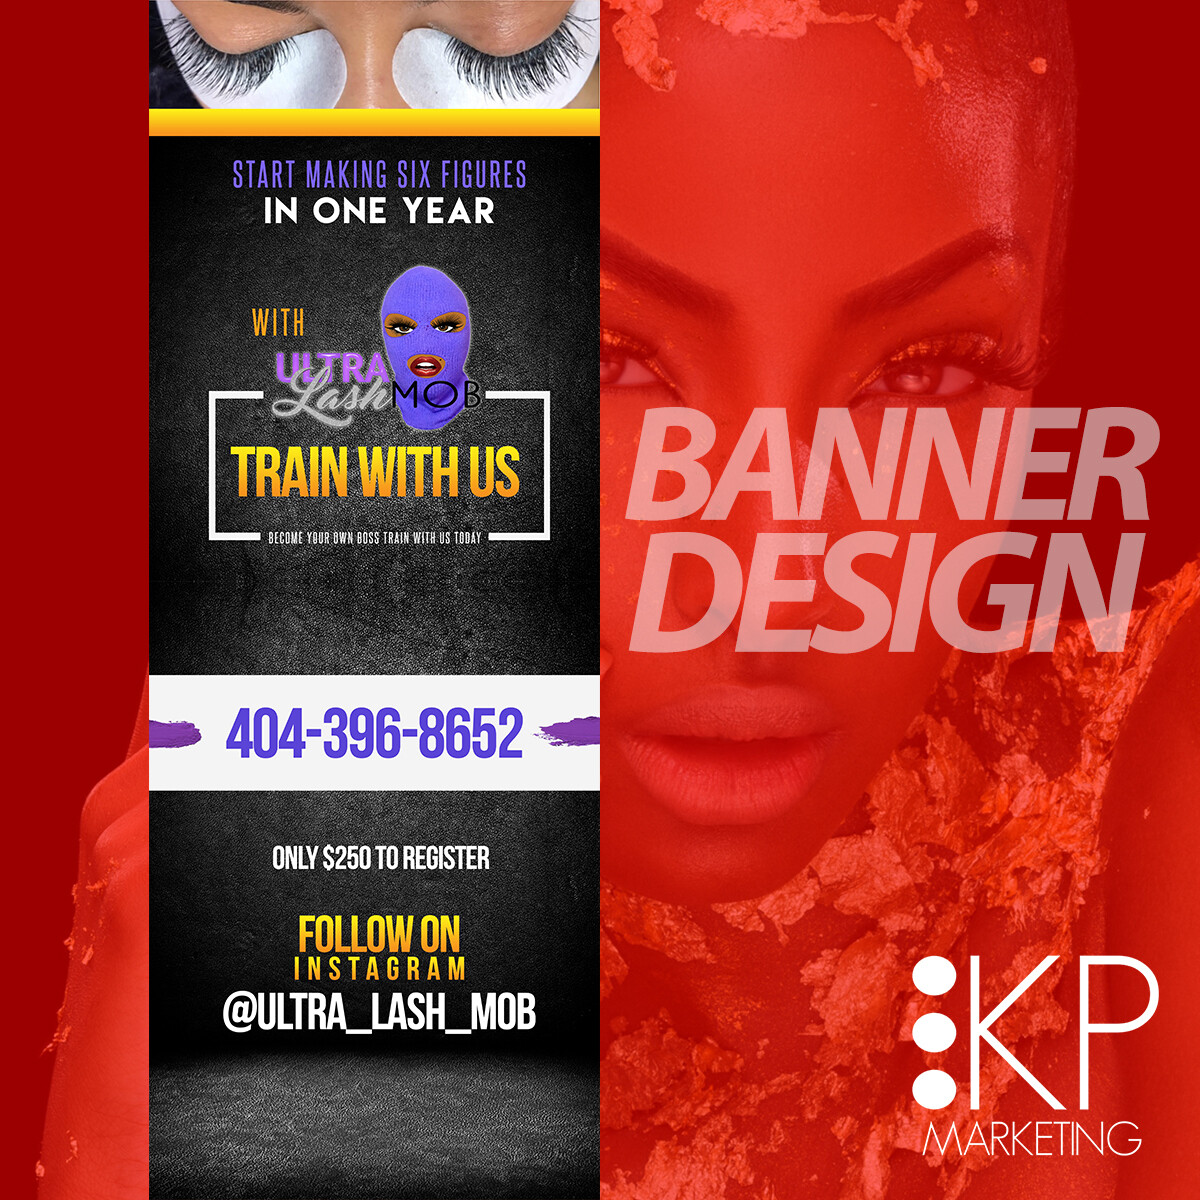 Retractable Banner Print & Design